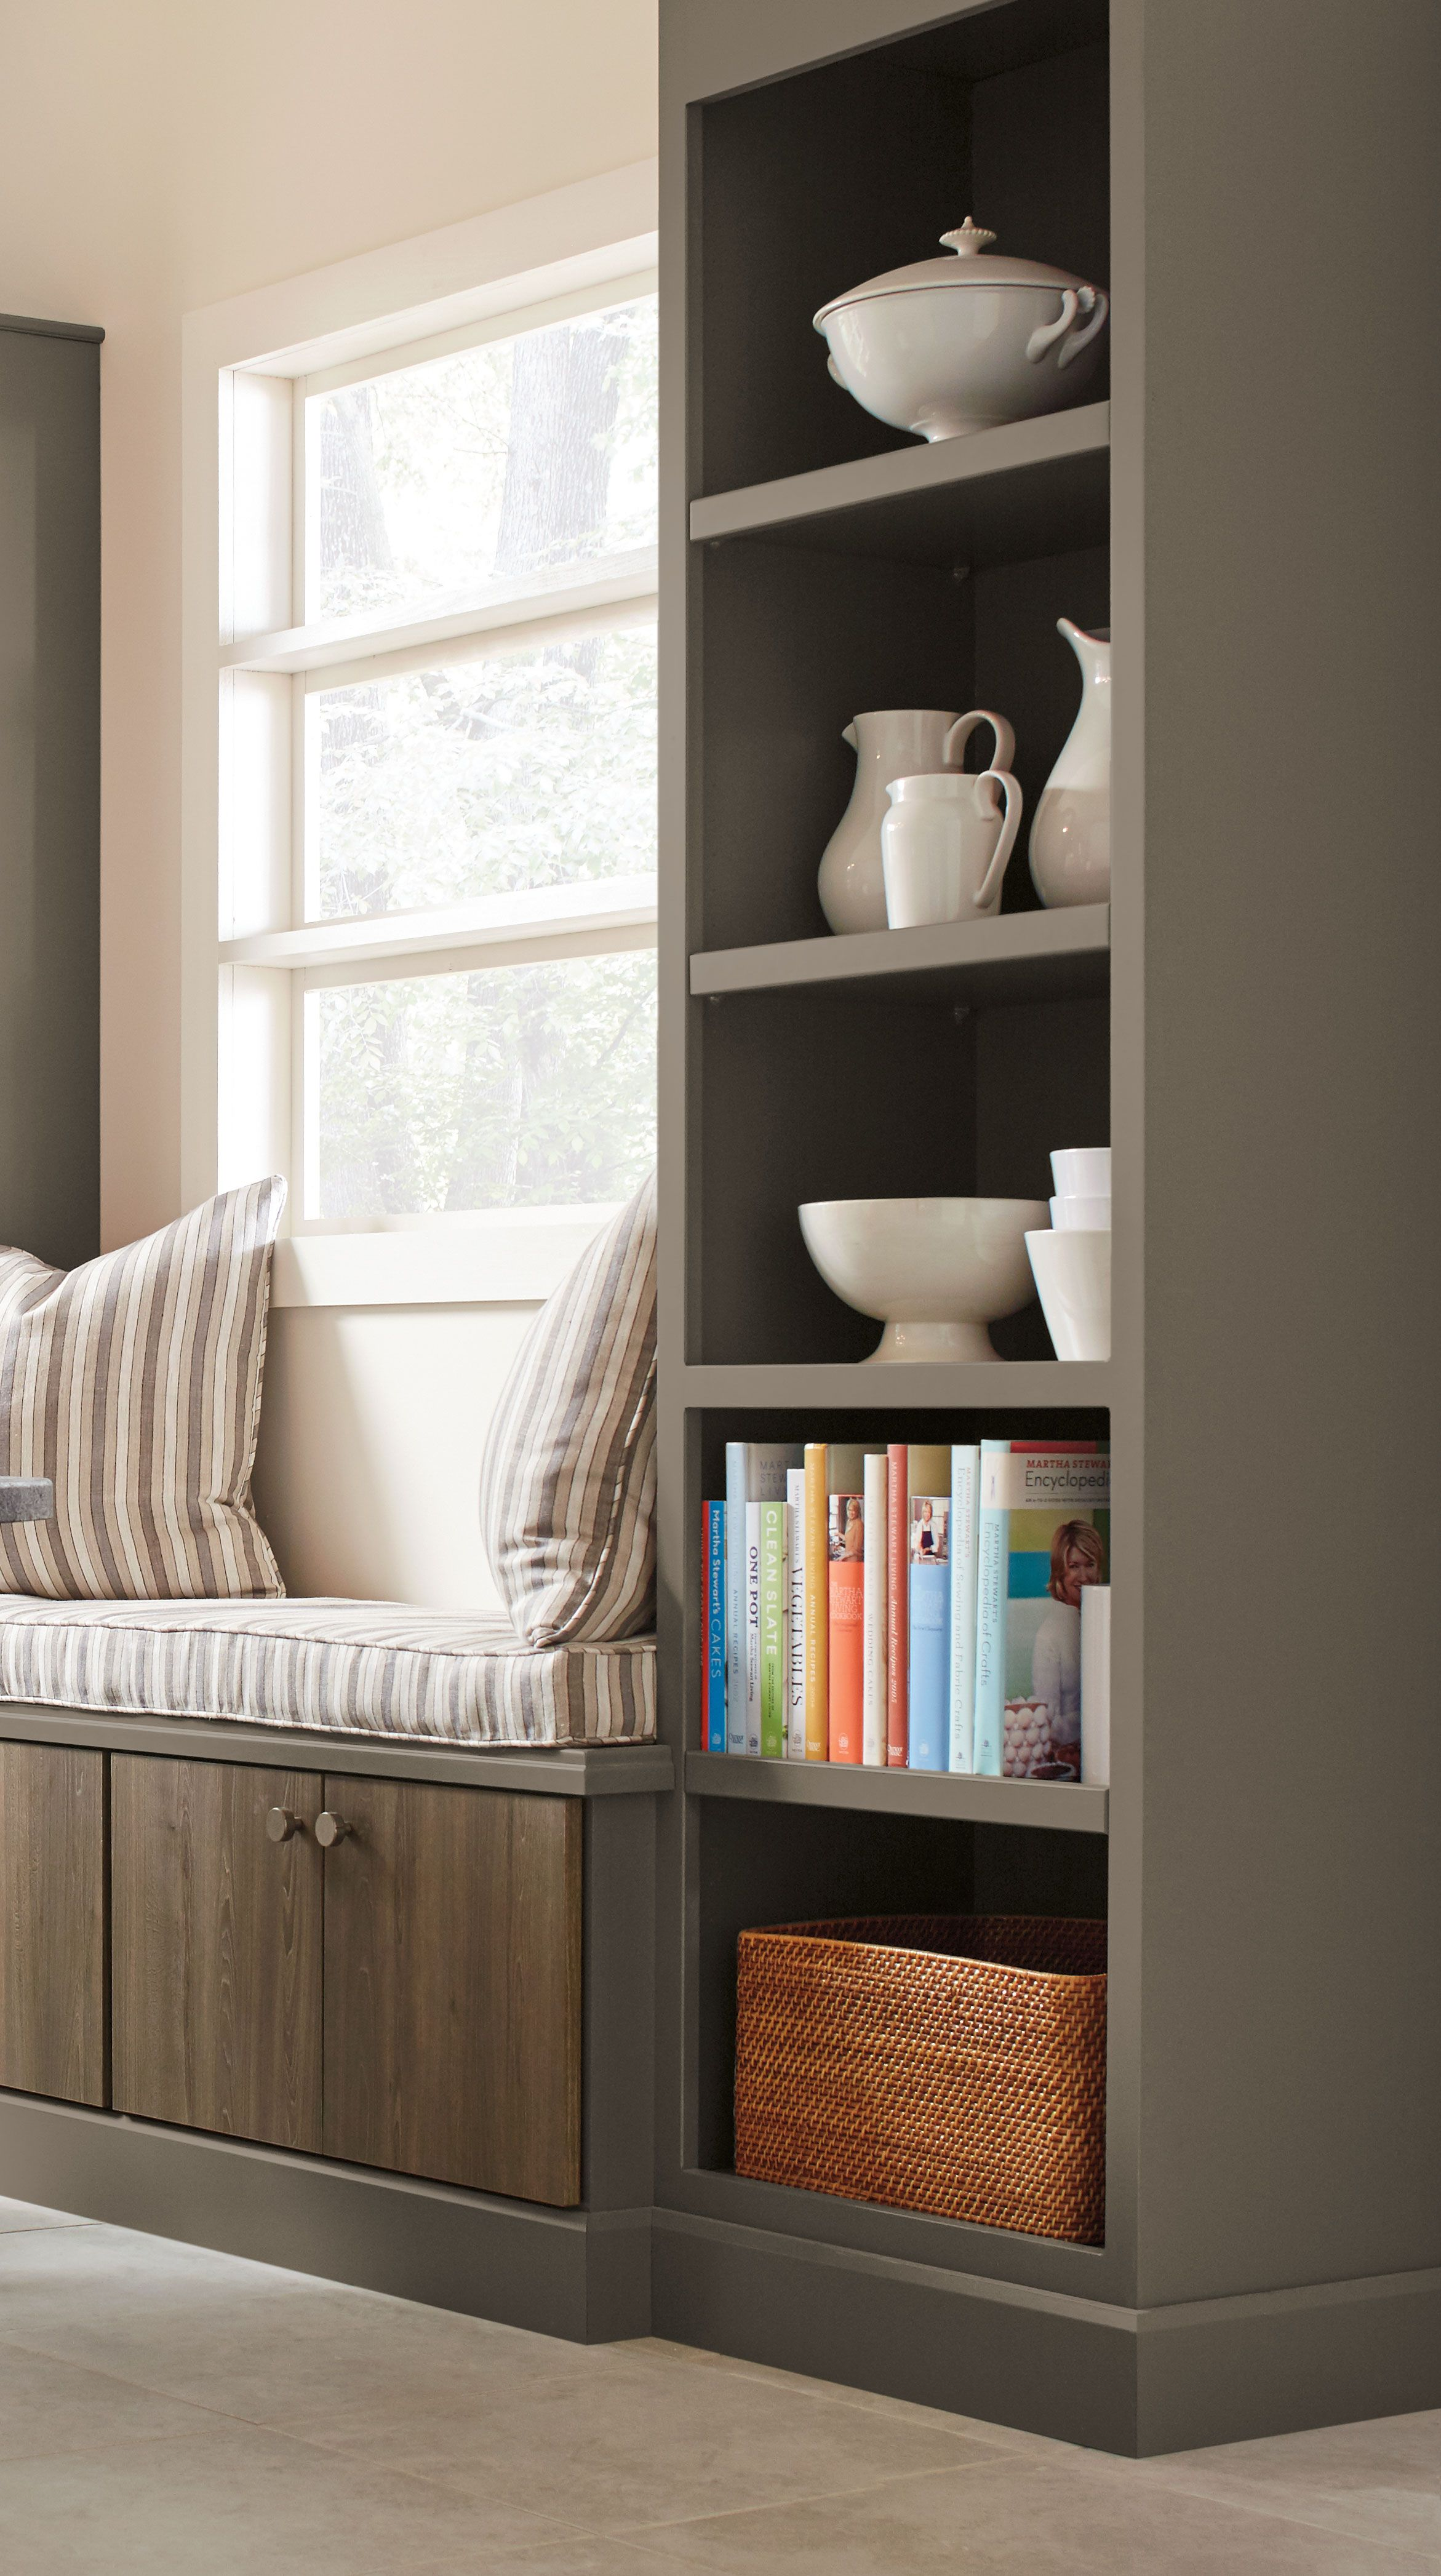 Kitchen Design Idea: Create A Cozy Seating Nook And Functional Storage Area  With Cabinetry From